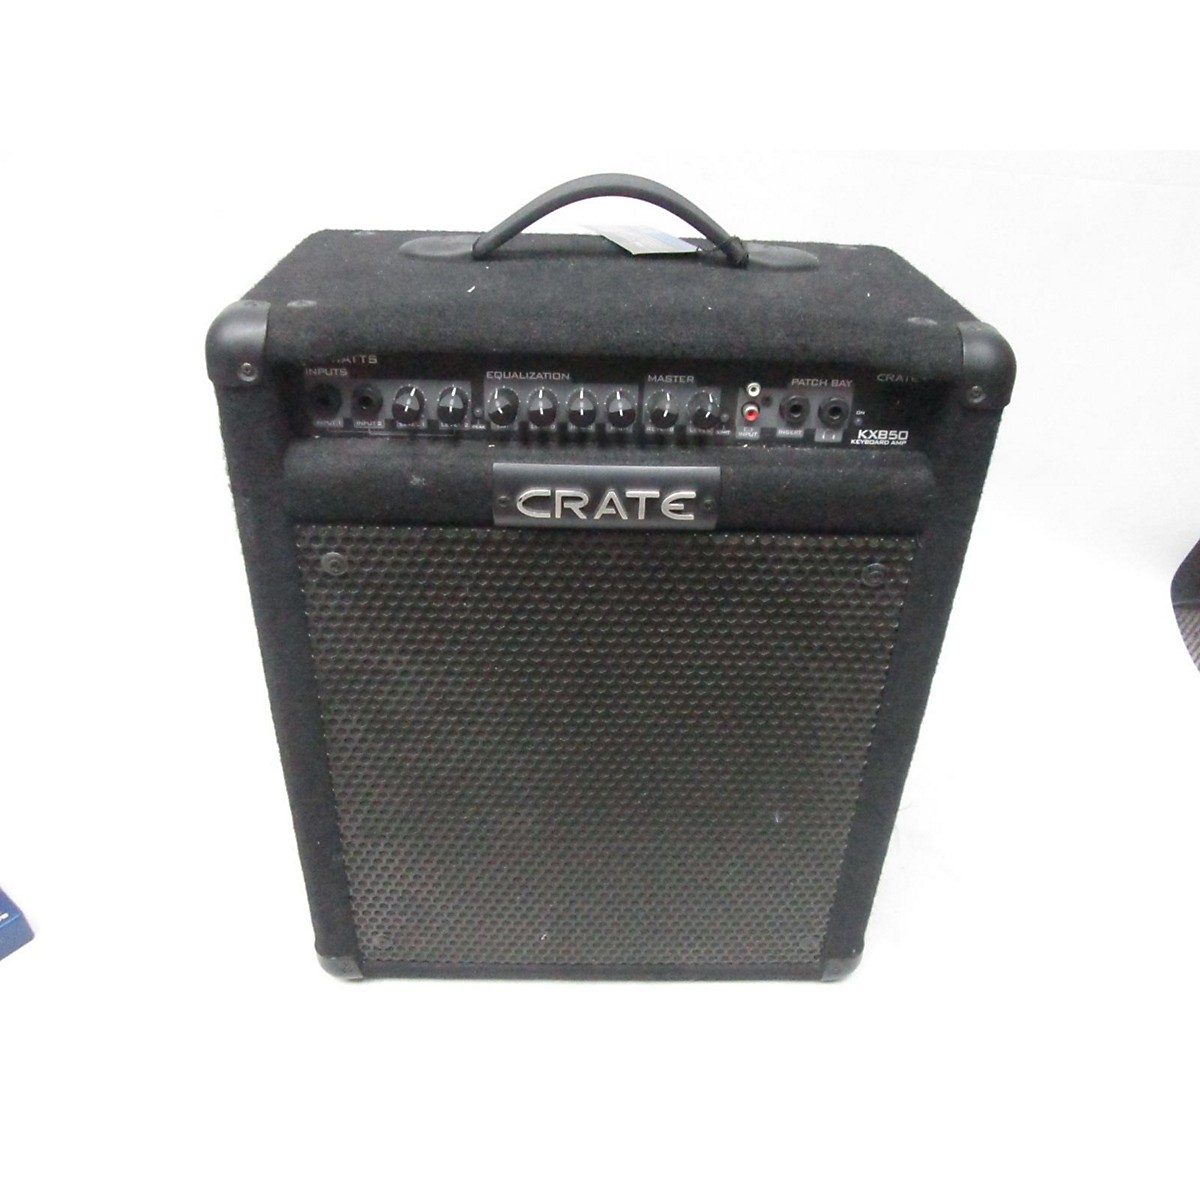 Crate KXB50 Keyboard Amp